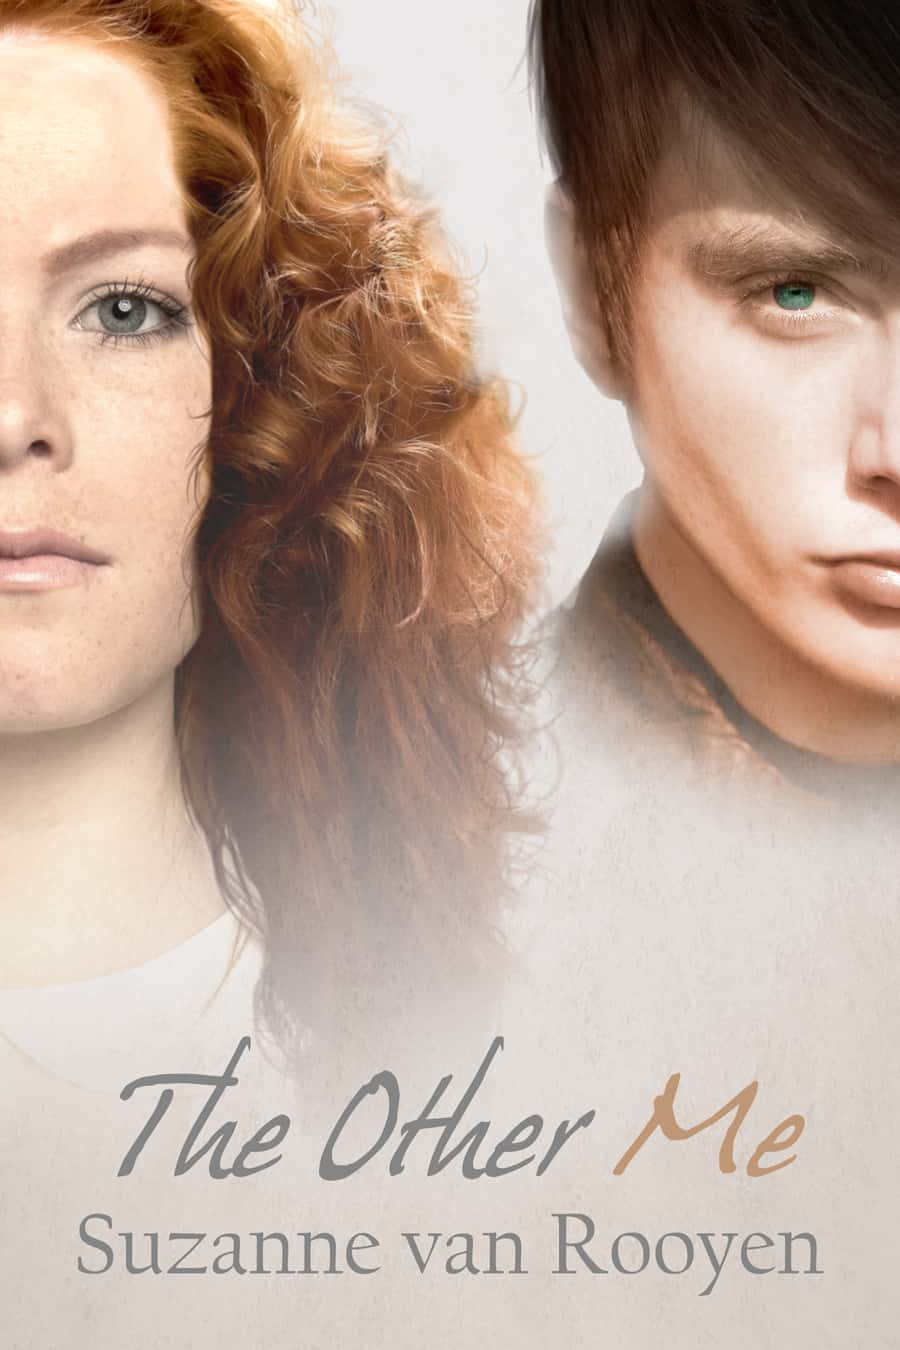 THE OTHER ME by Suzanne van Rooyen